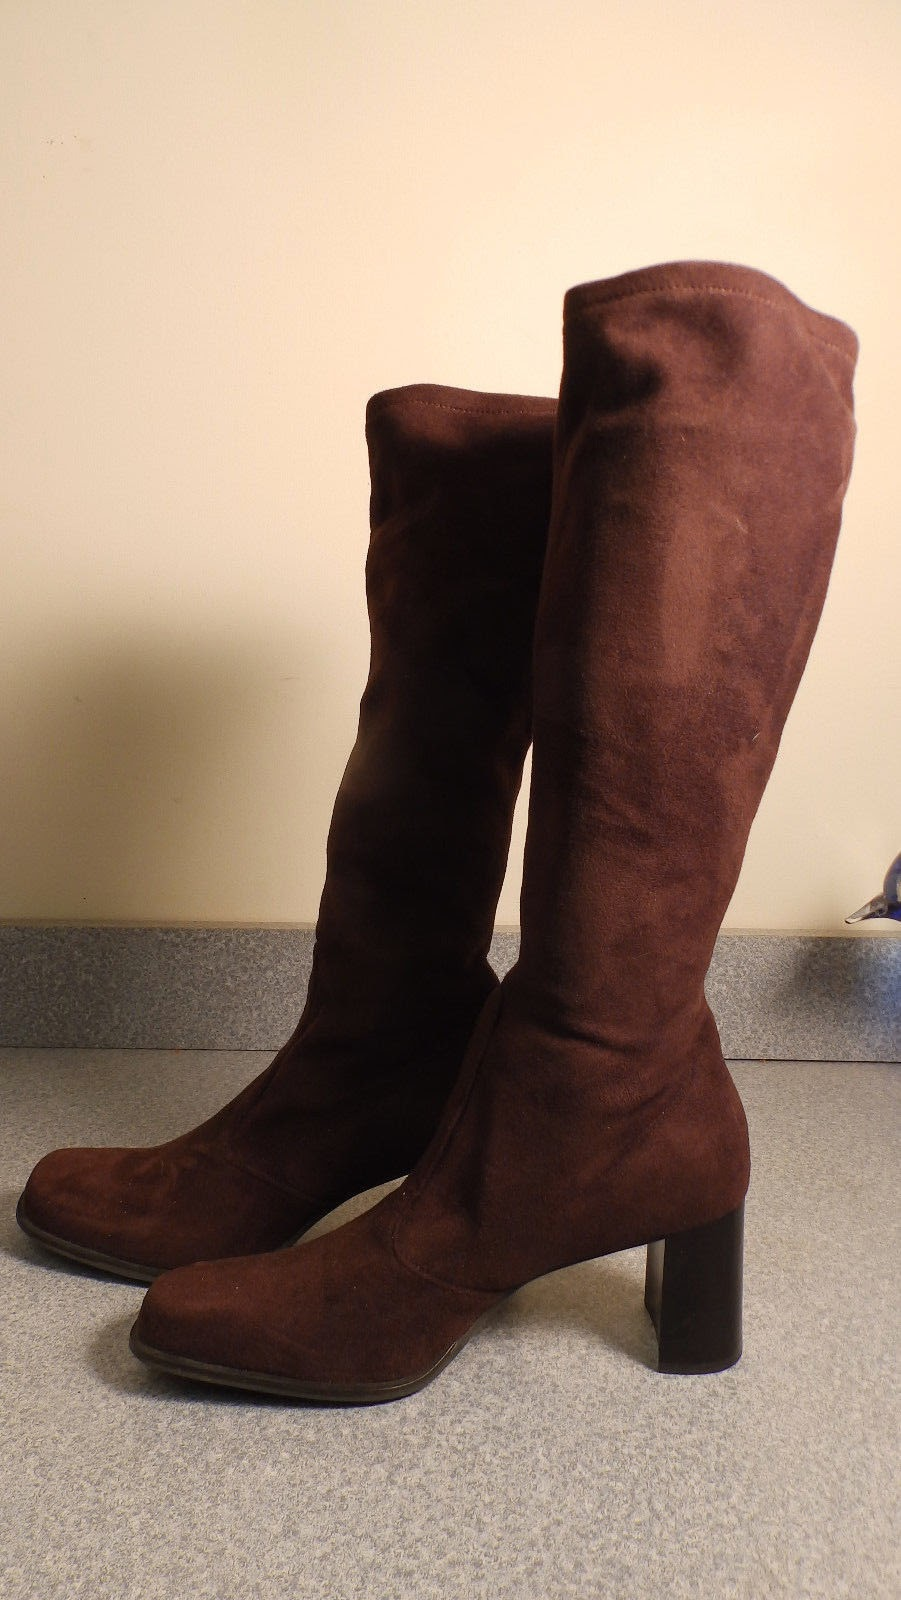 http://www.ebay.com/itm/Franco-Sarto-suede-knee-boots-brown-size-9-1-2-M-/321692645592?pt=LH_DefaultDomain_0&hash=item4ae66038d8